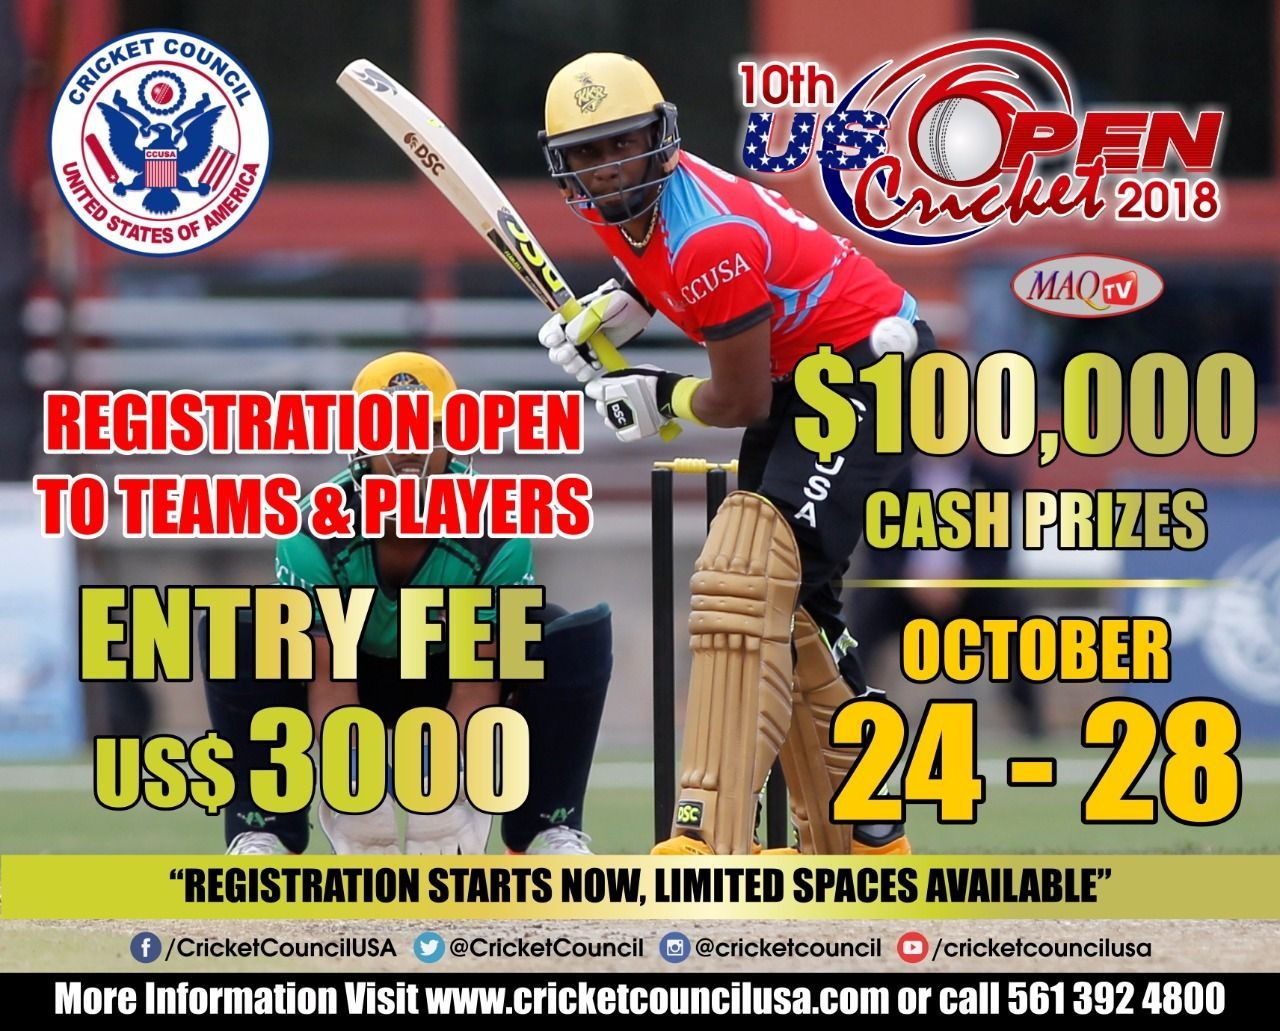 US Open Cricket 2018 [October 24th to 28th, 2018] @ Central